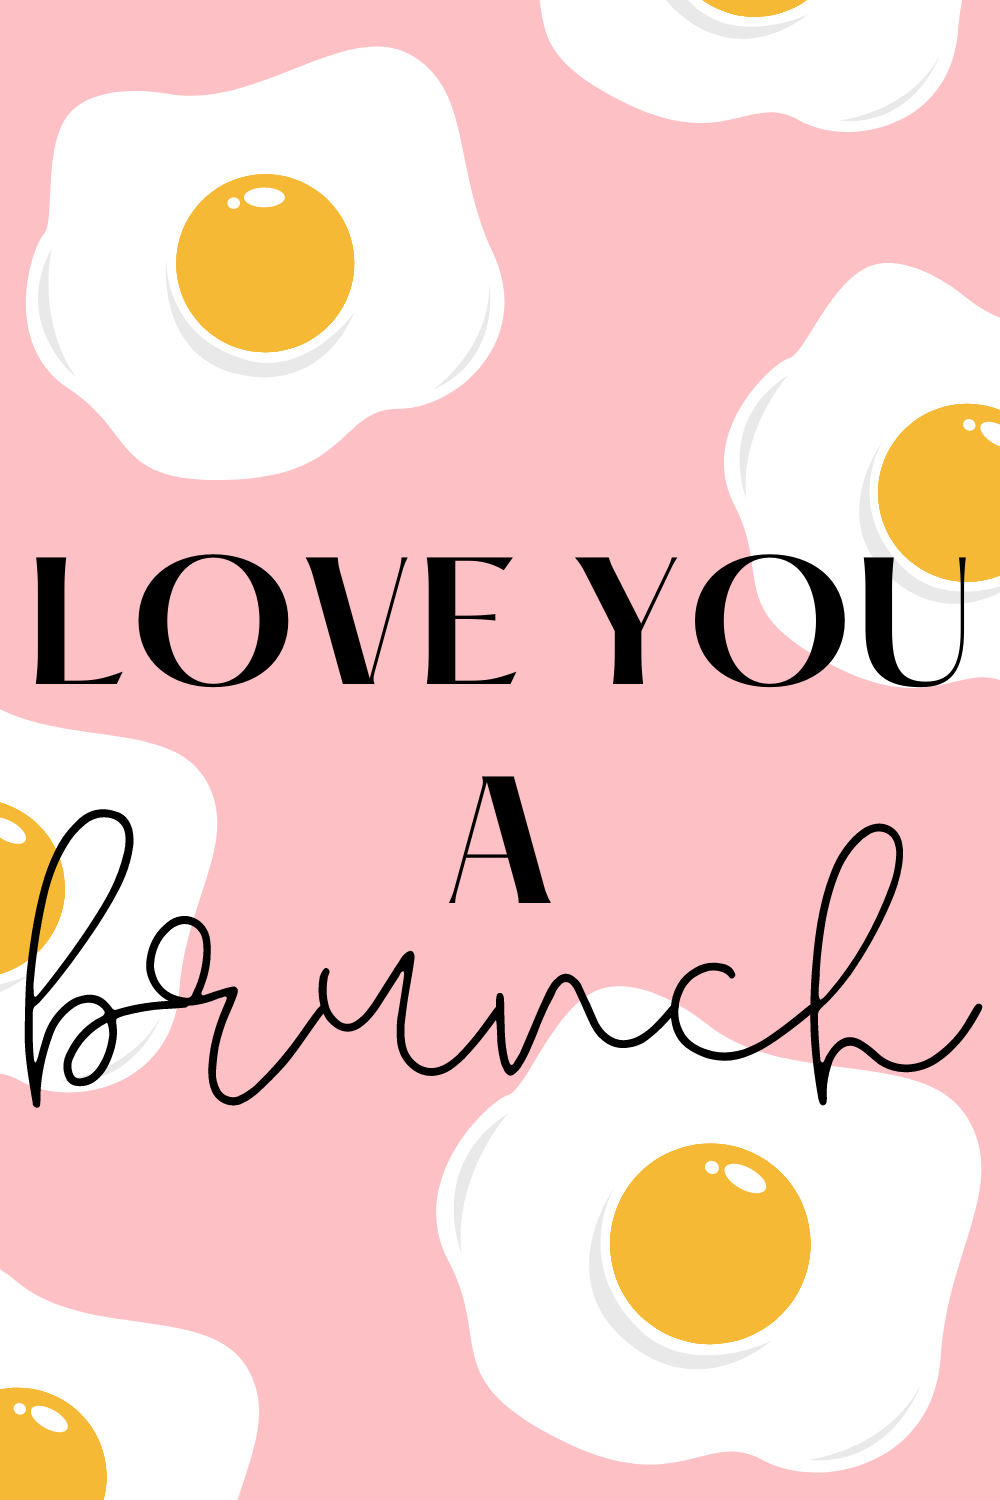 Brunch Quotes And Images For Valentines